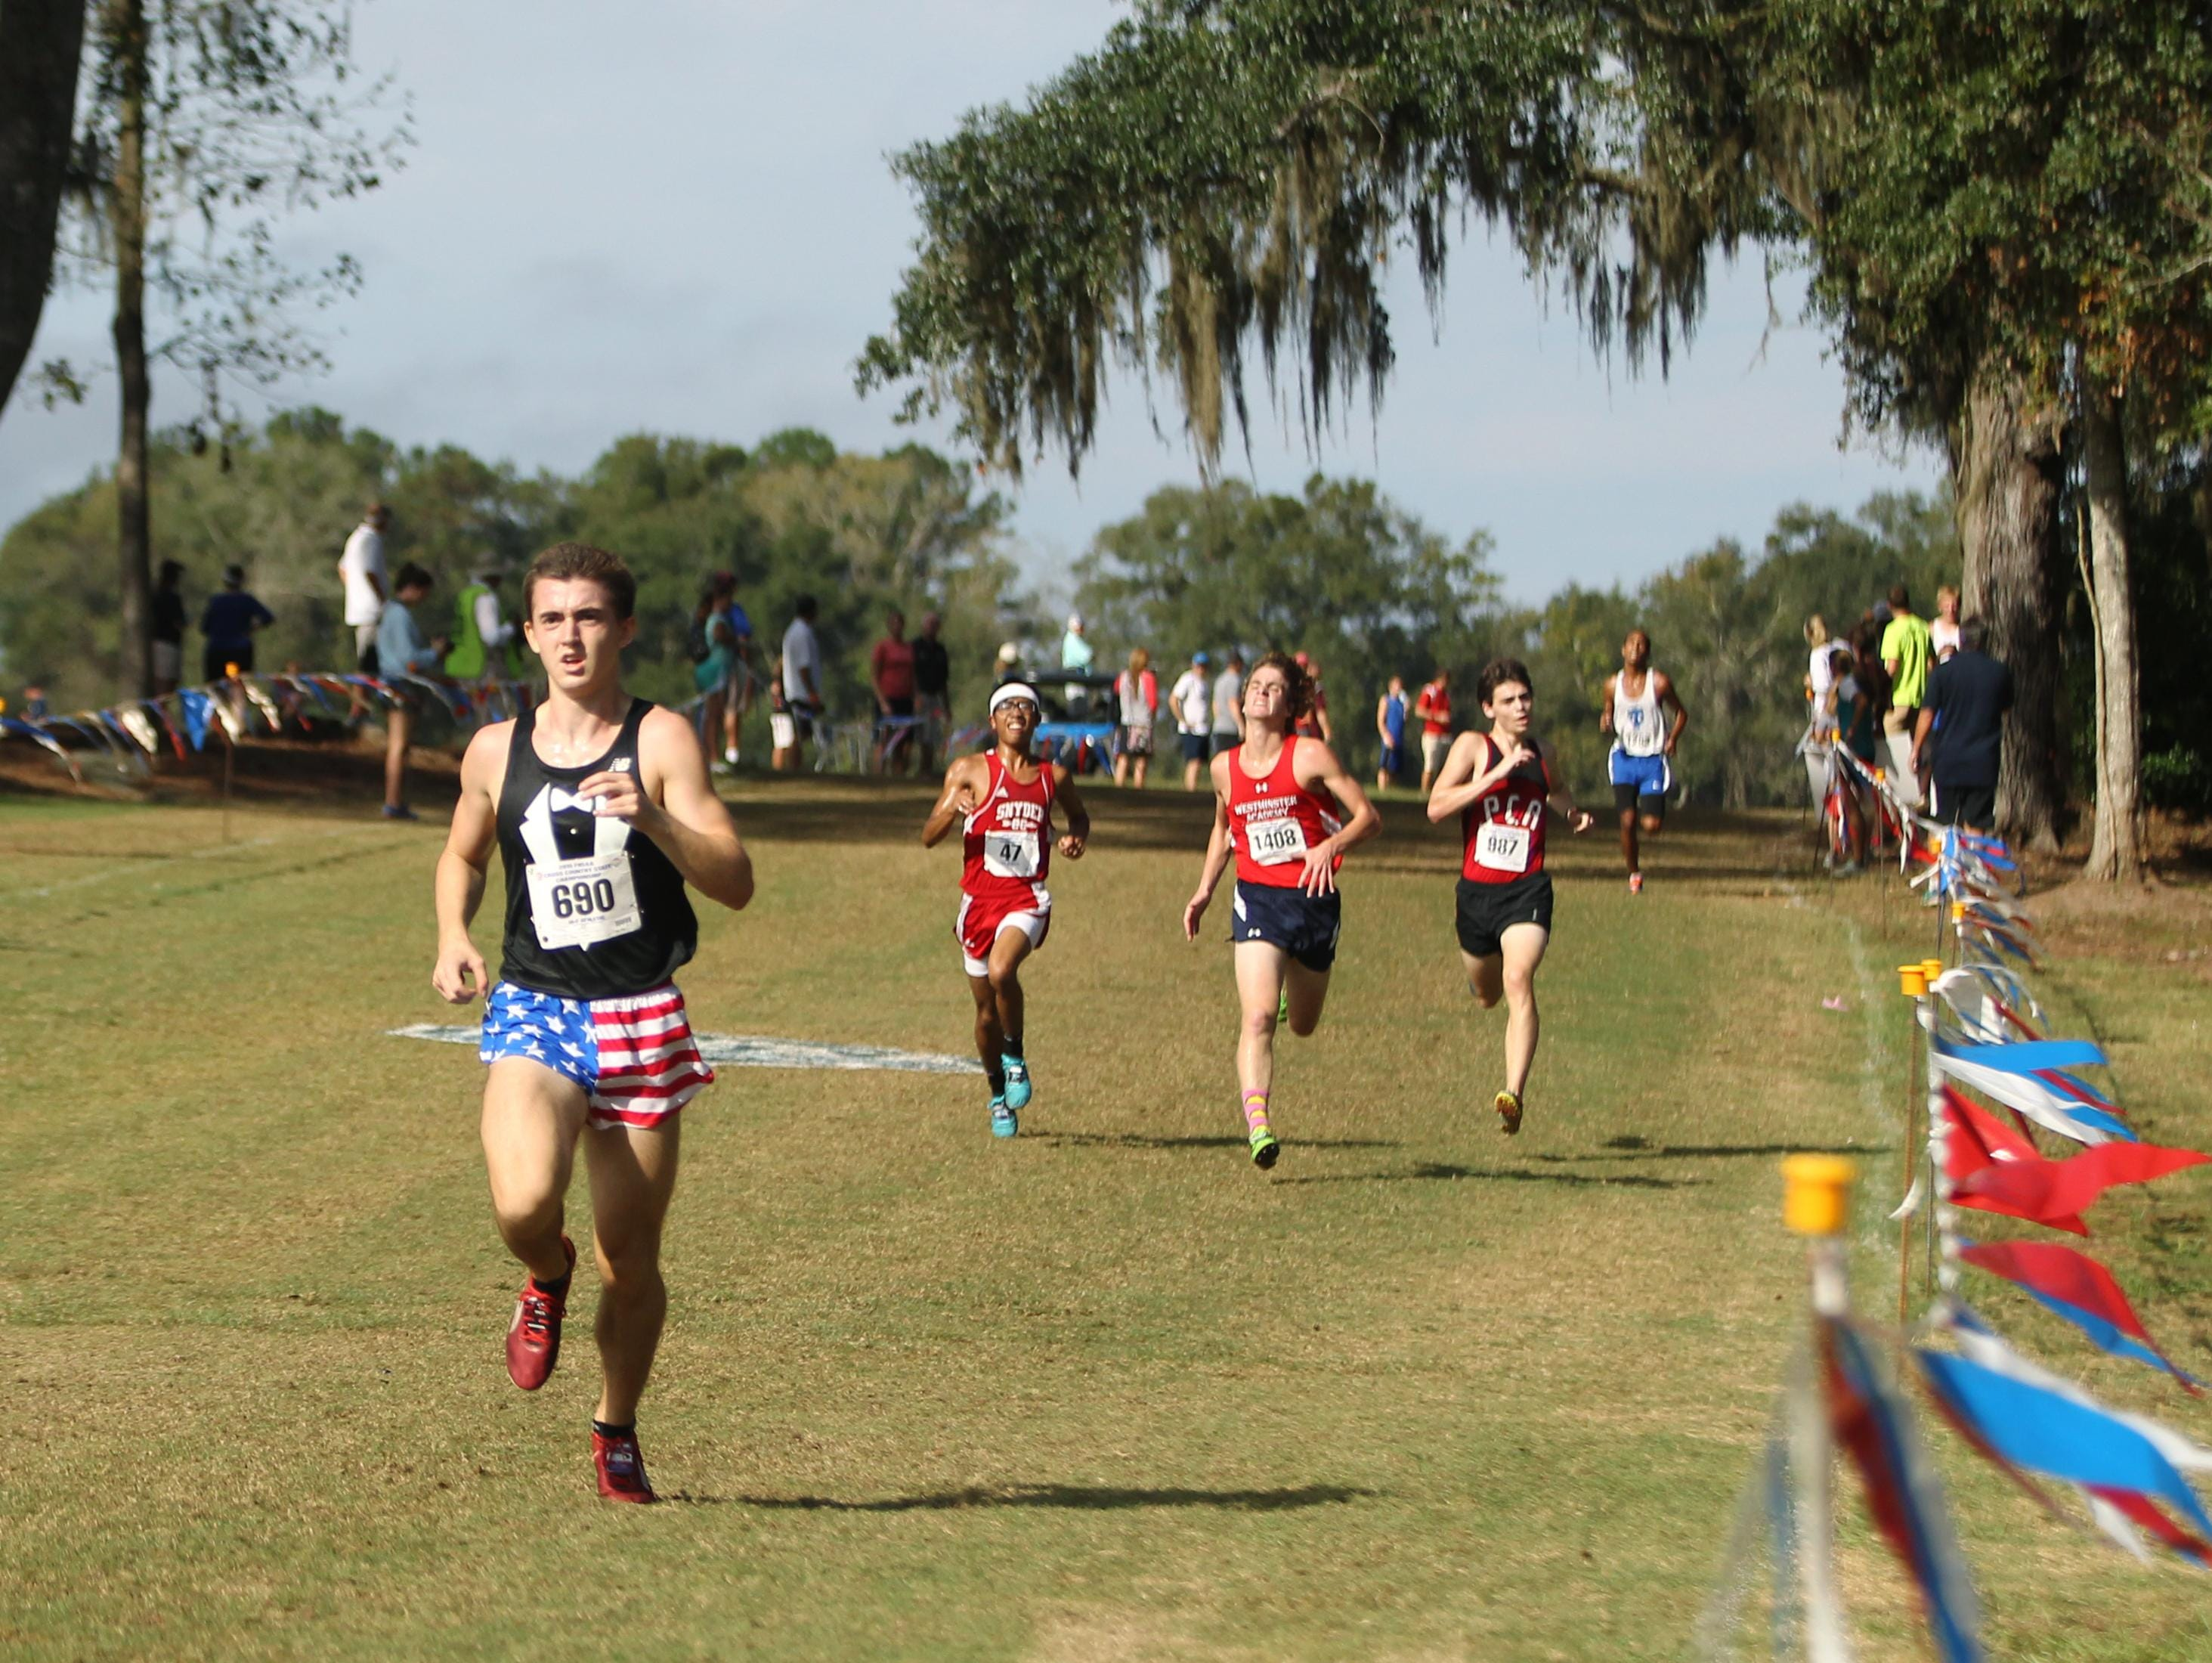 Maclay sophomore James McClure was the highest finisher for the Marauders' boys team, helping the team earn the 1A state runner-up during Saturday's FHSAA cross country finals at Apalachee Regional Park.